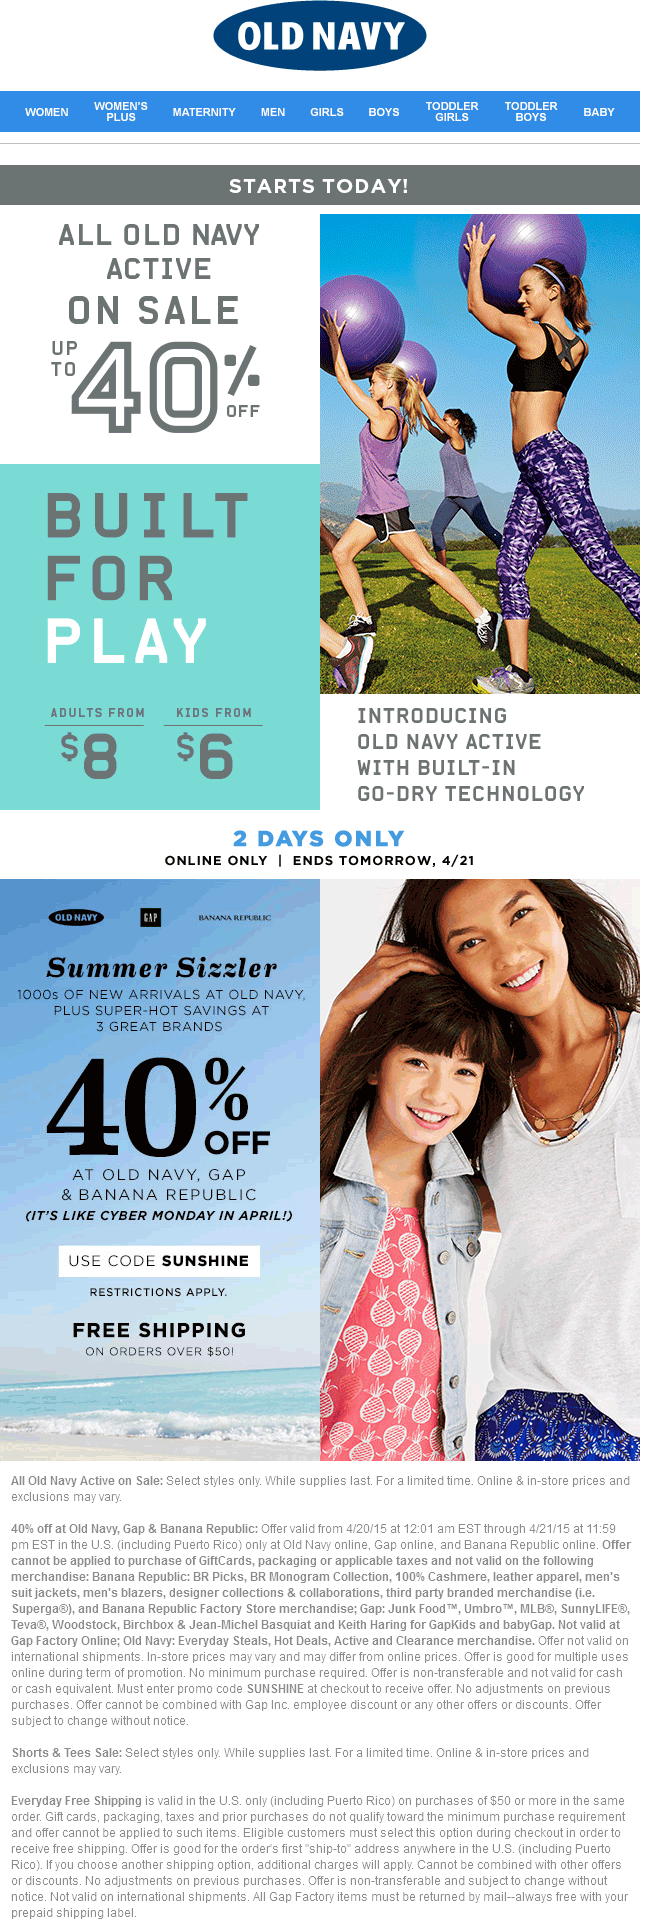 Old Navy Coupon January 2019 40% off online at Old Navy, Gap & Banana Republic via promo code SUNSHINE